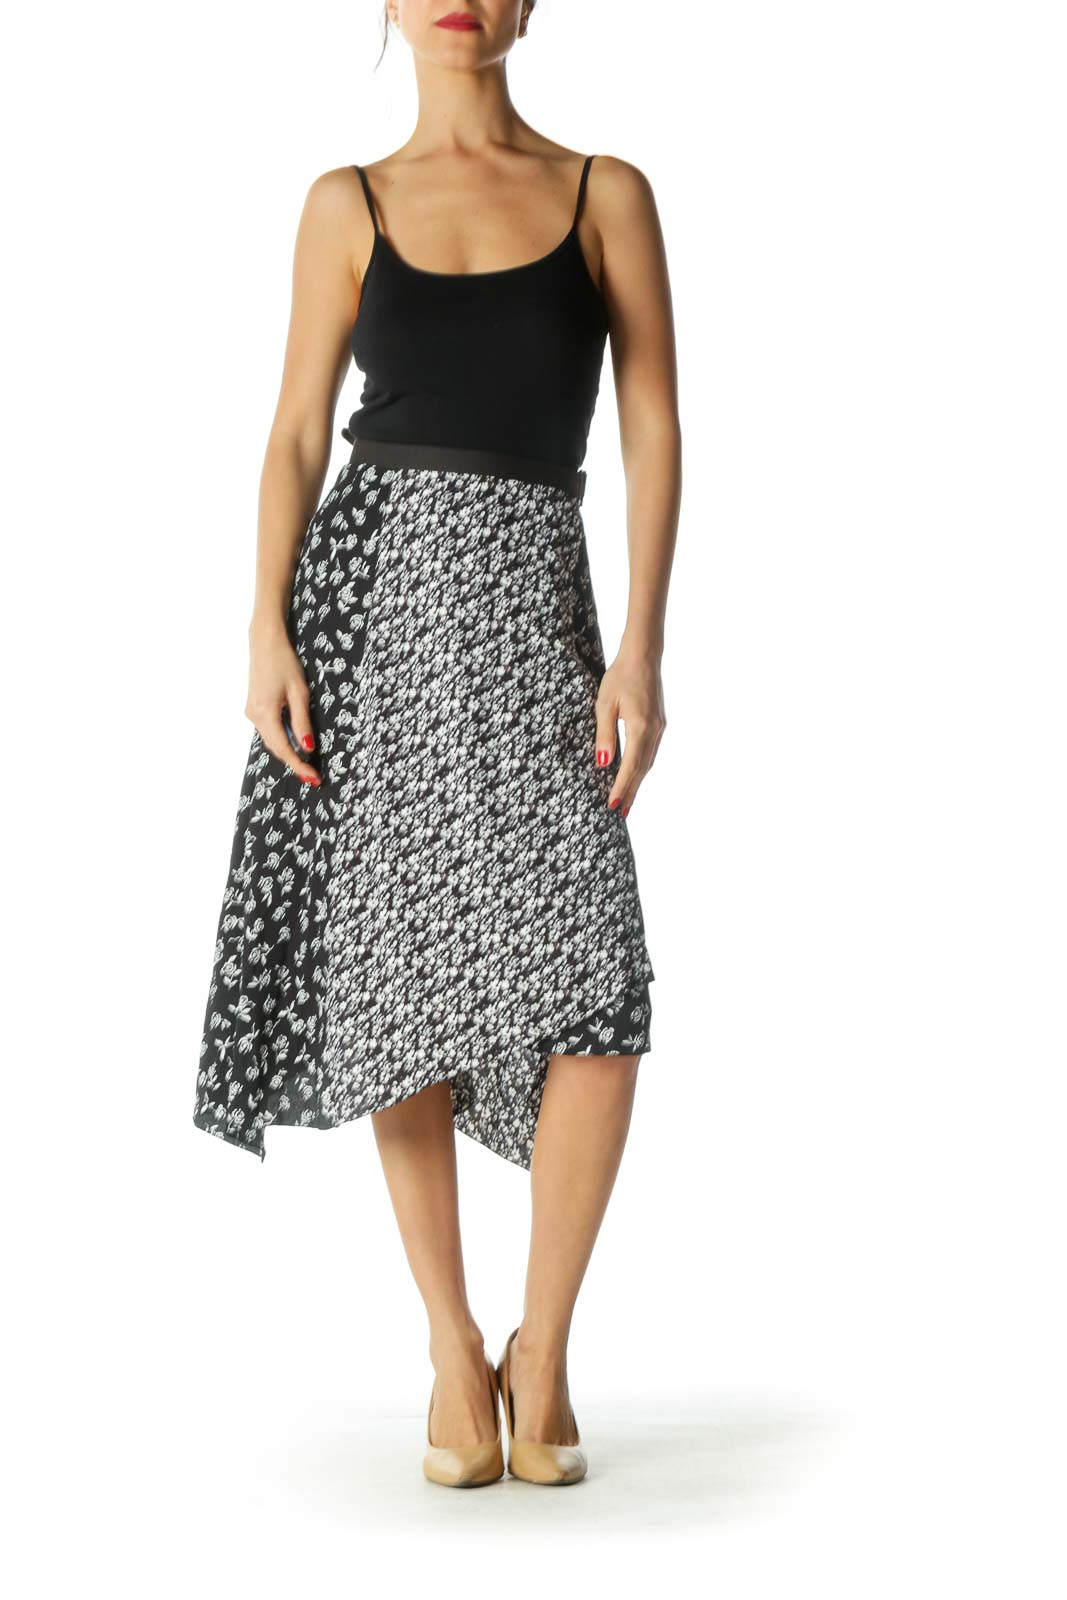 Black and White Floral Print Asymmetrical Skirt